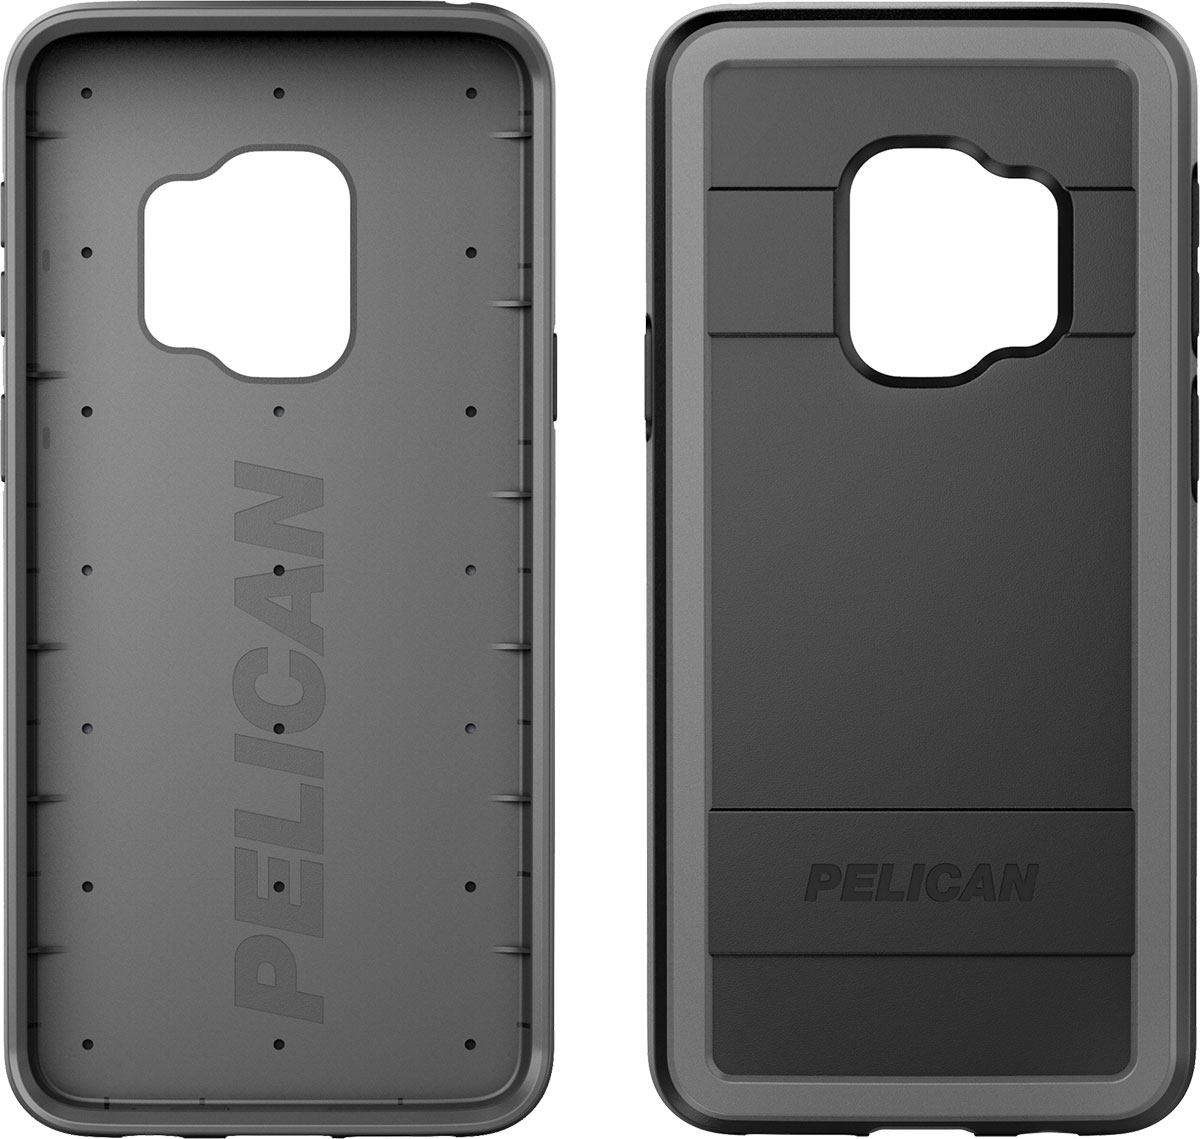 pelican phone protection galaxy s9 case